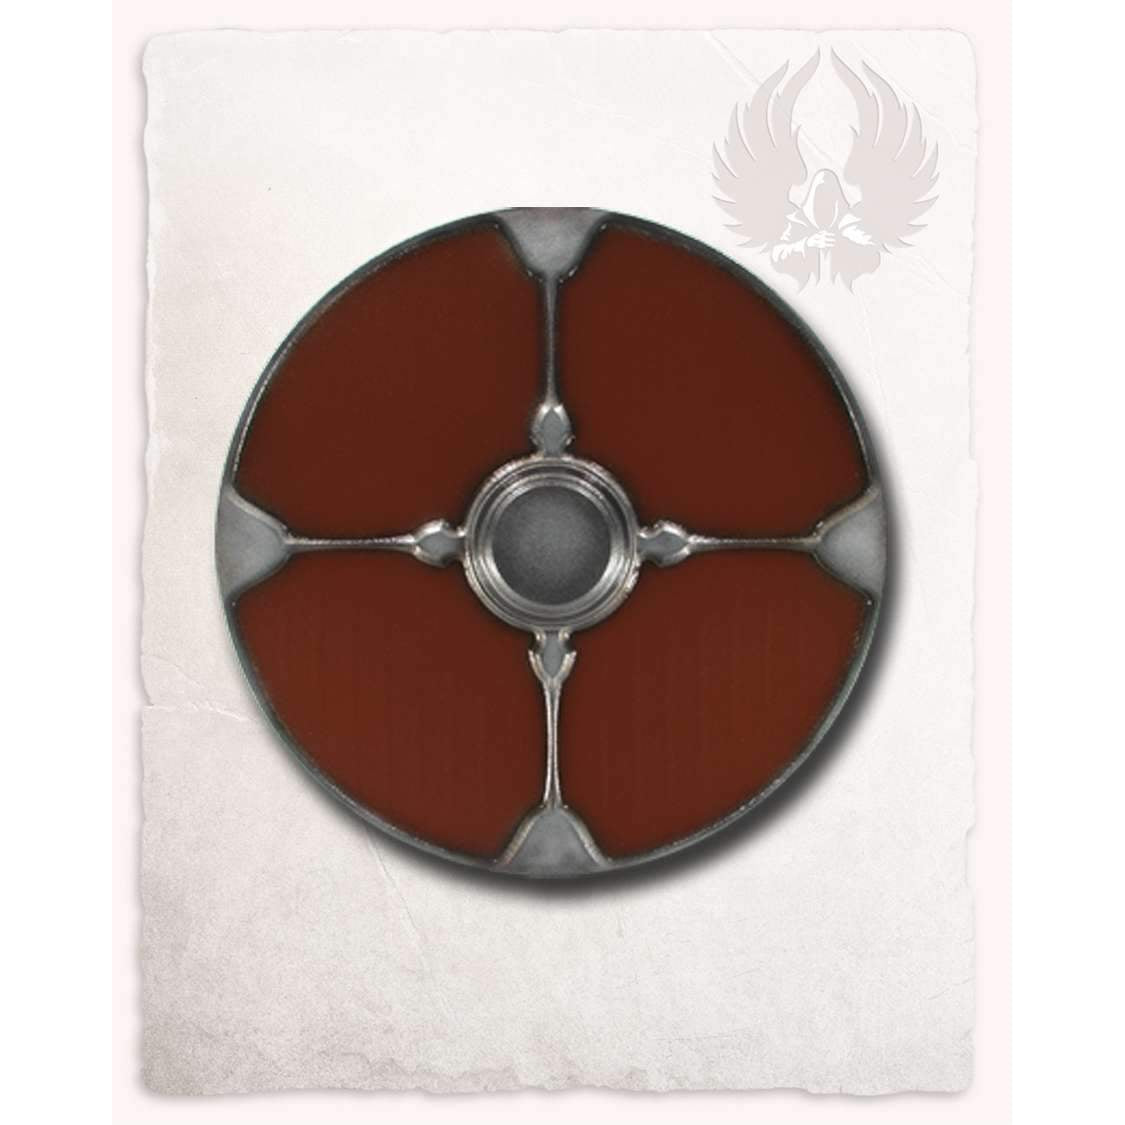 Gaelic 2nd Ed. round shield